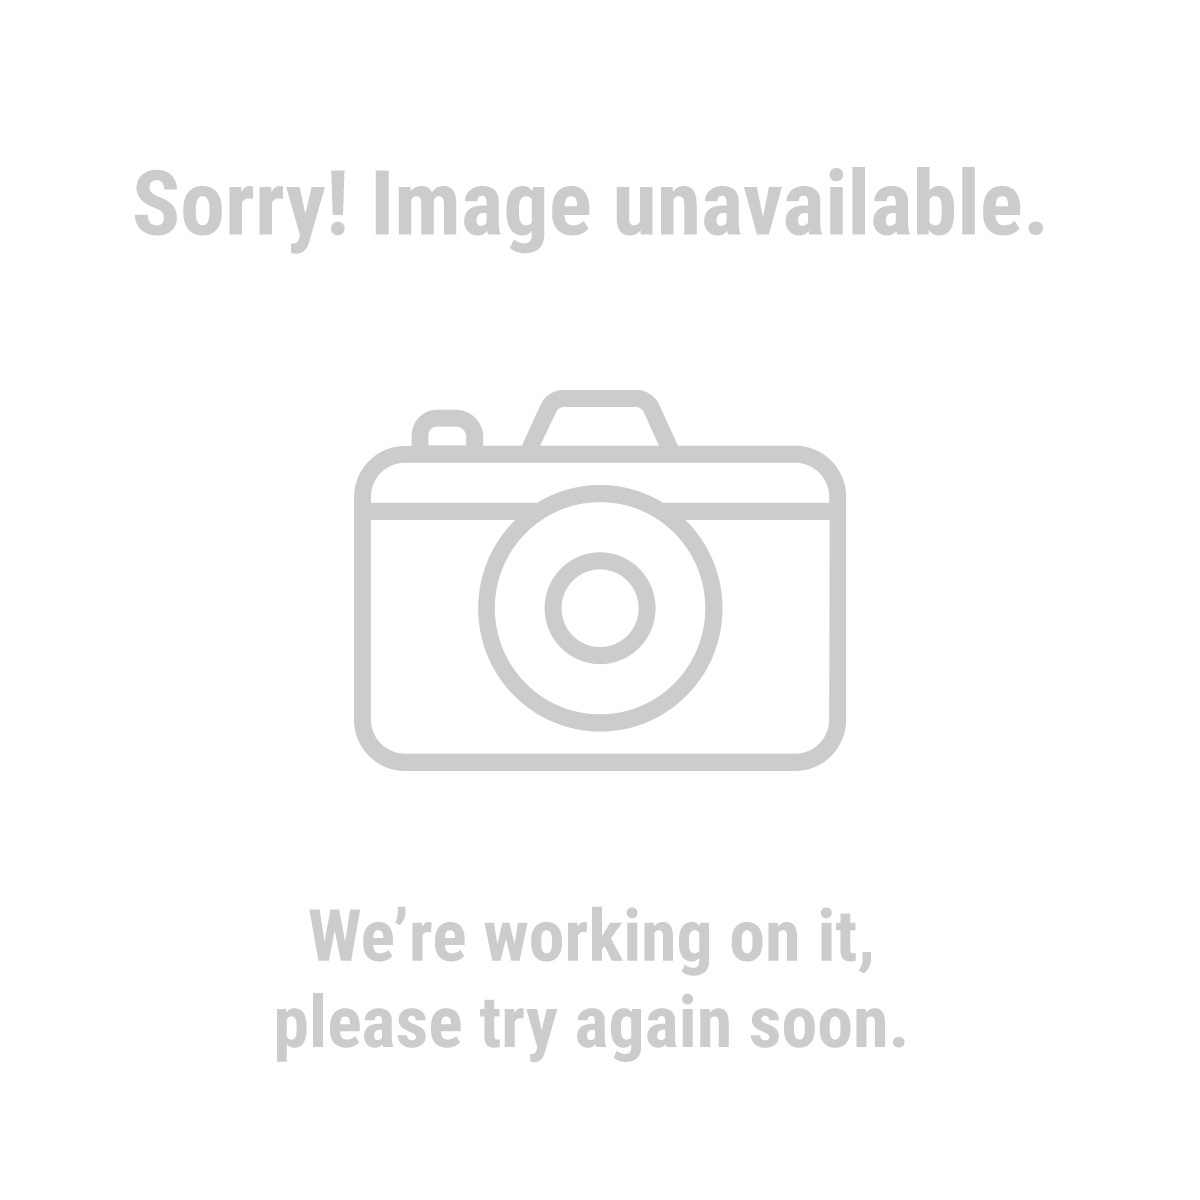 61647 6 in. Heavy Duty Caster